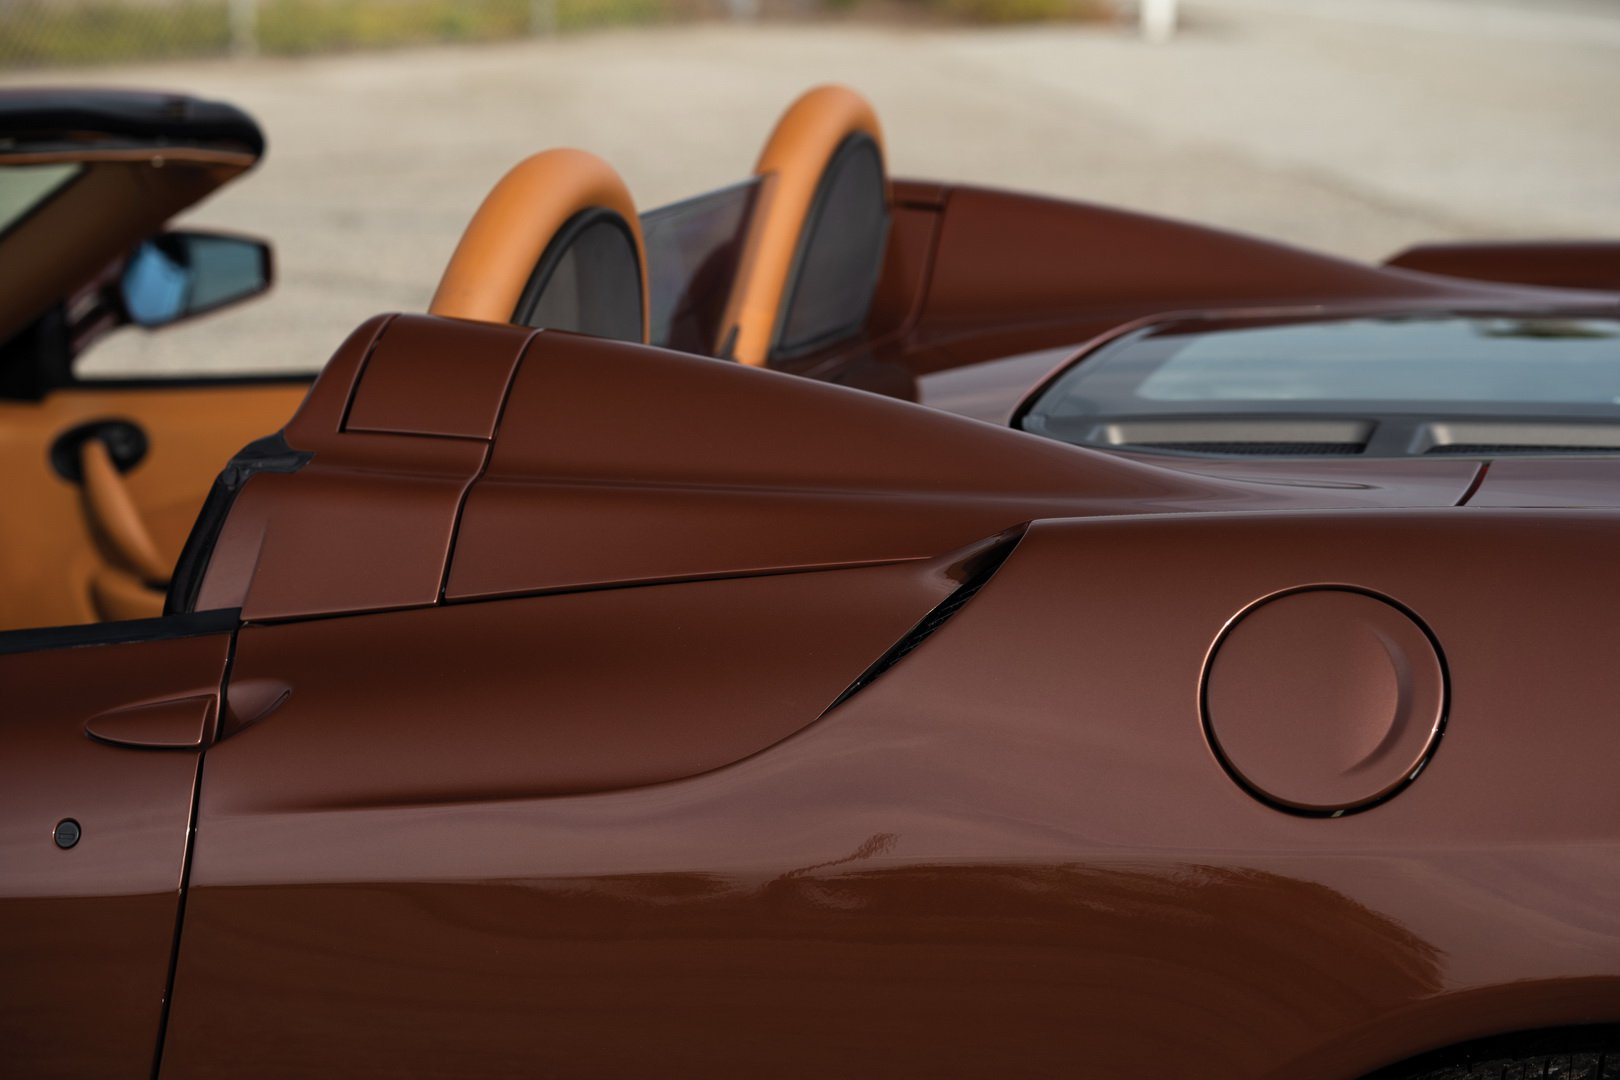 Ferrari F430 Spider in brown Classic Marrone color (15)